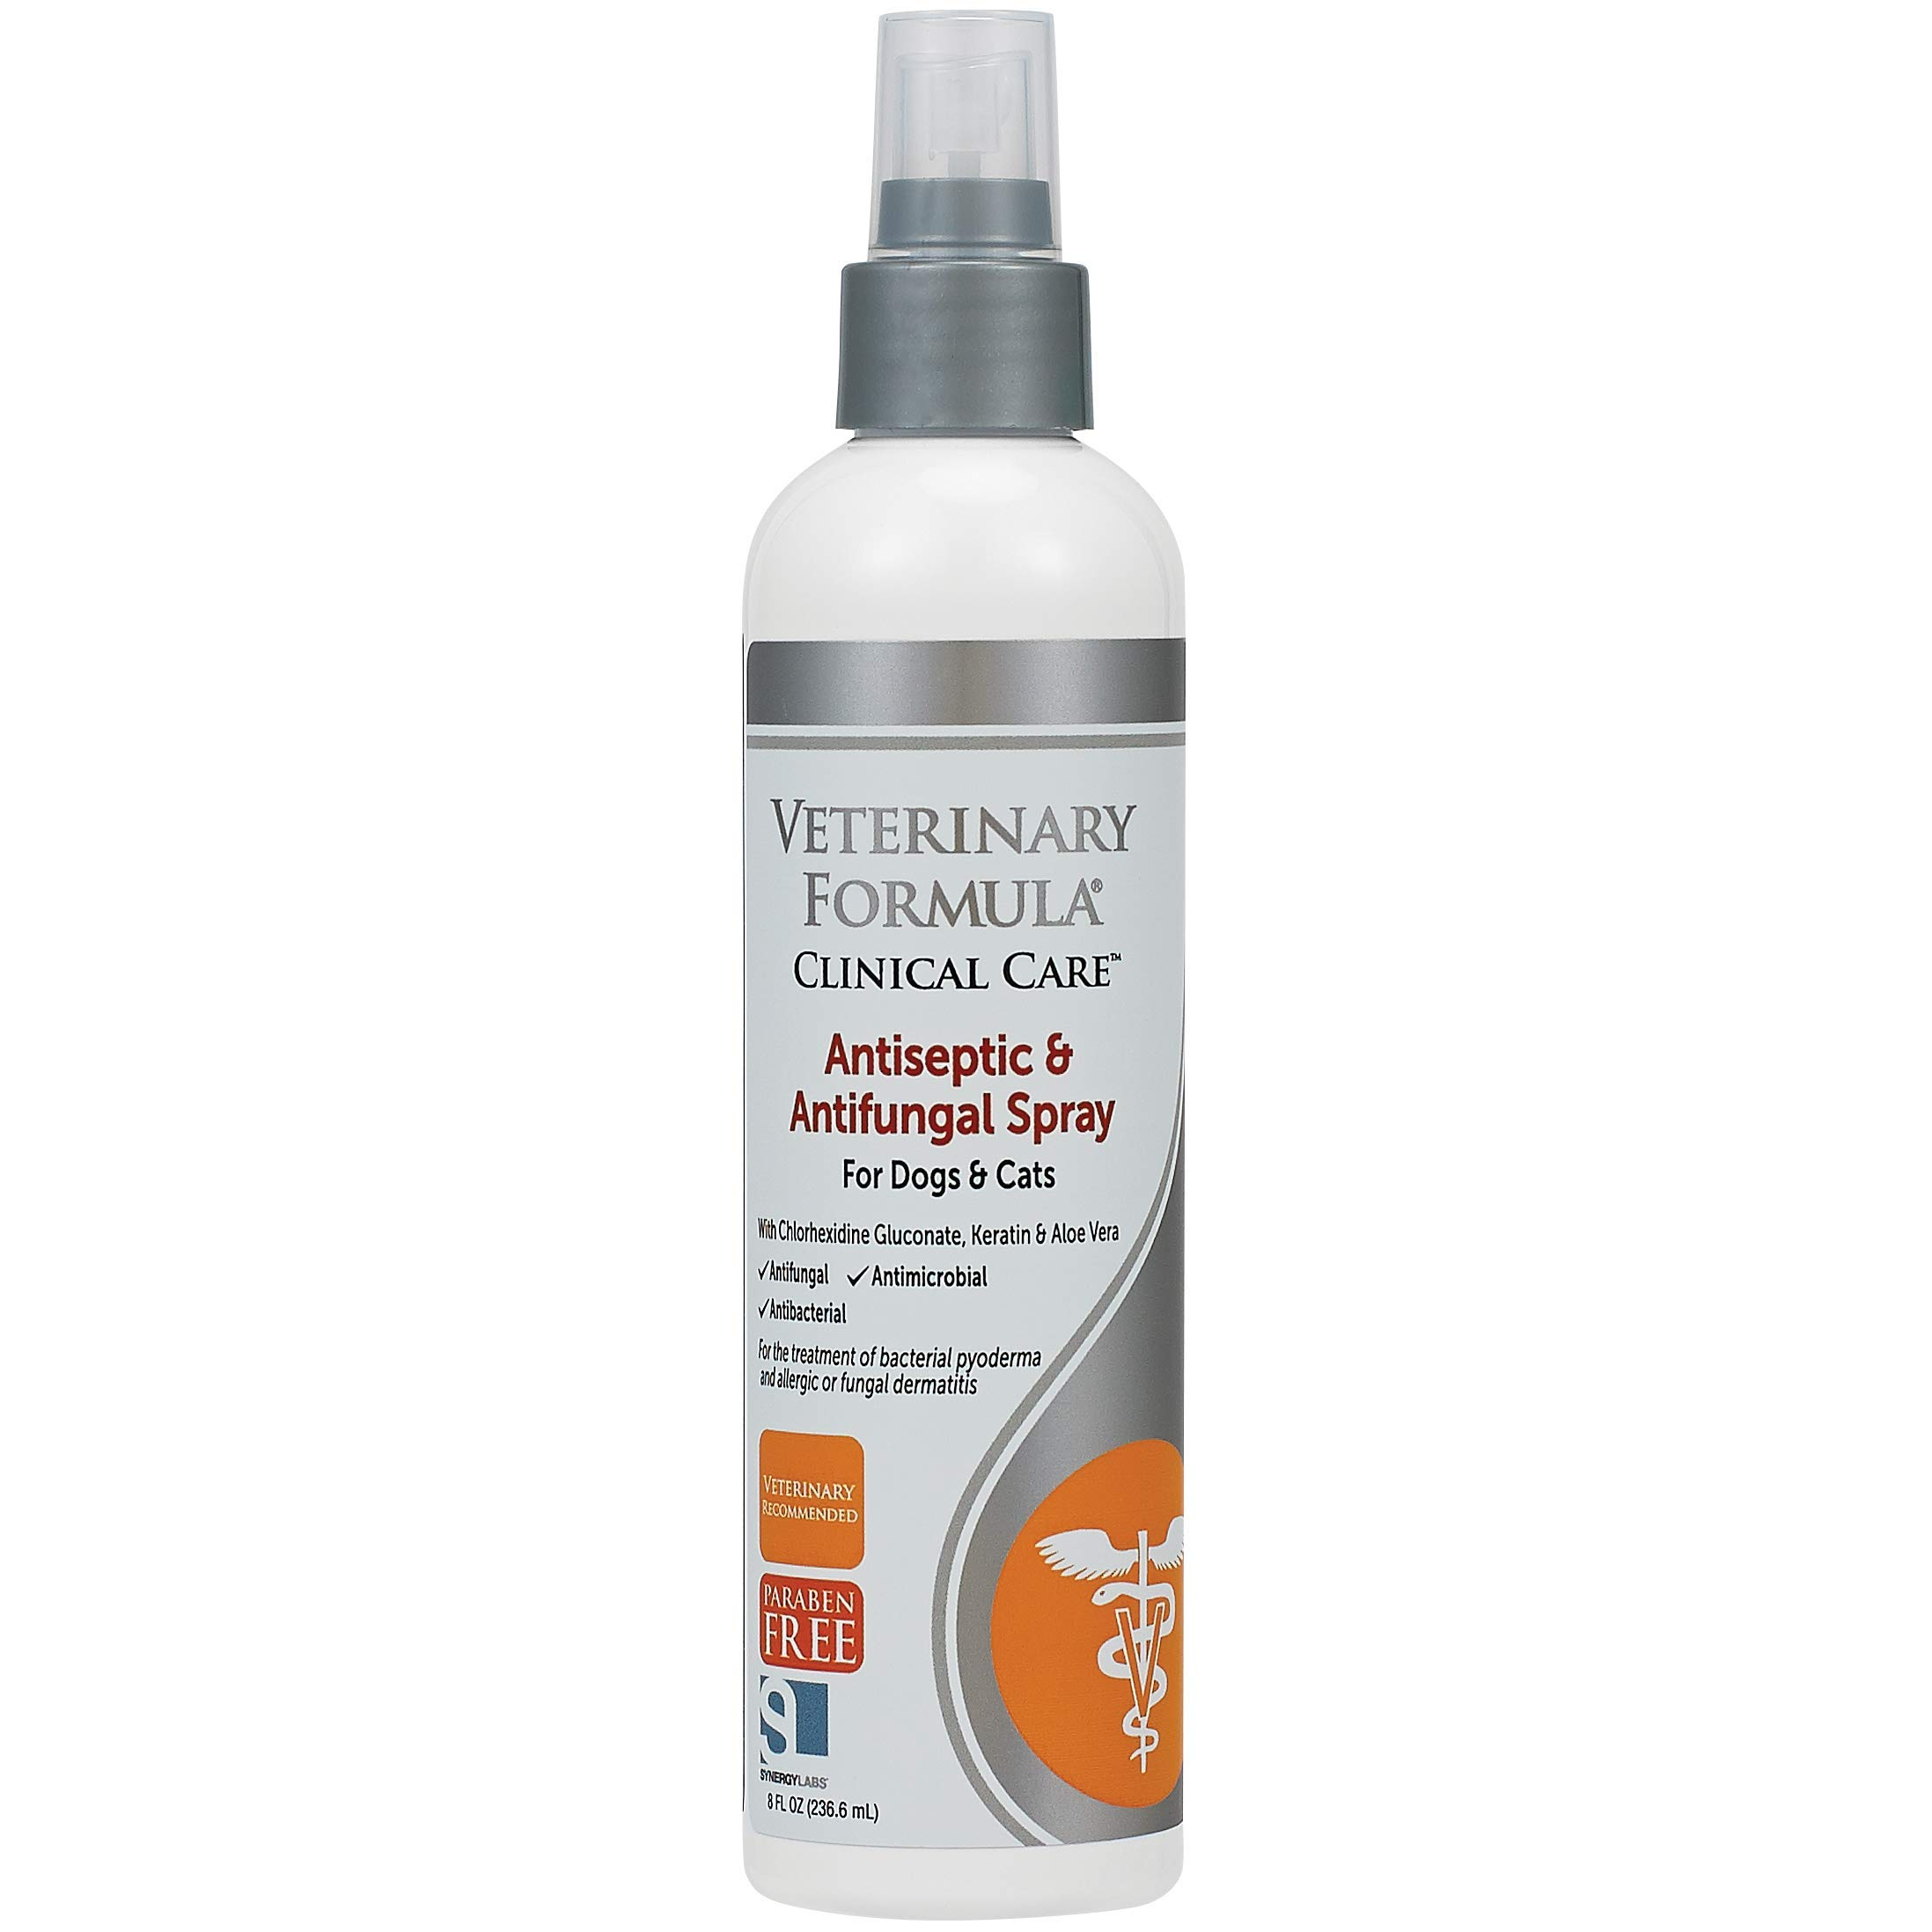 Veterinary Formula Clinical Care Antiseptic and Antifungal Spray/Shampoo for Dogs and Cats